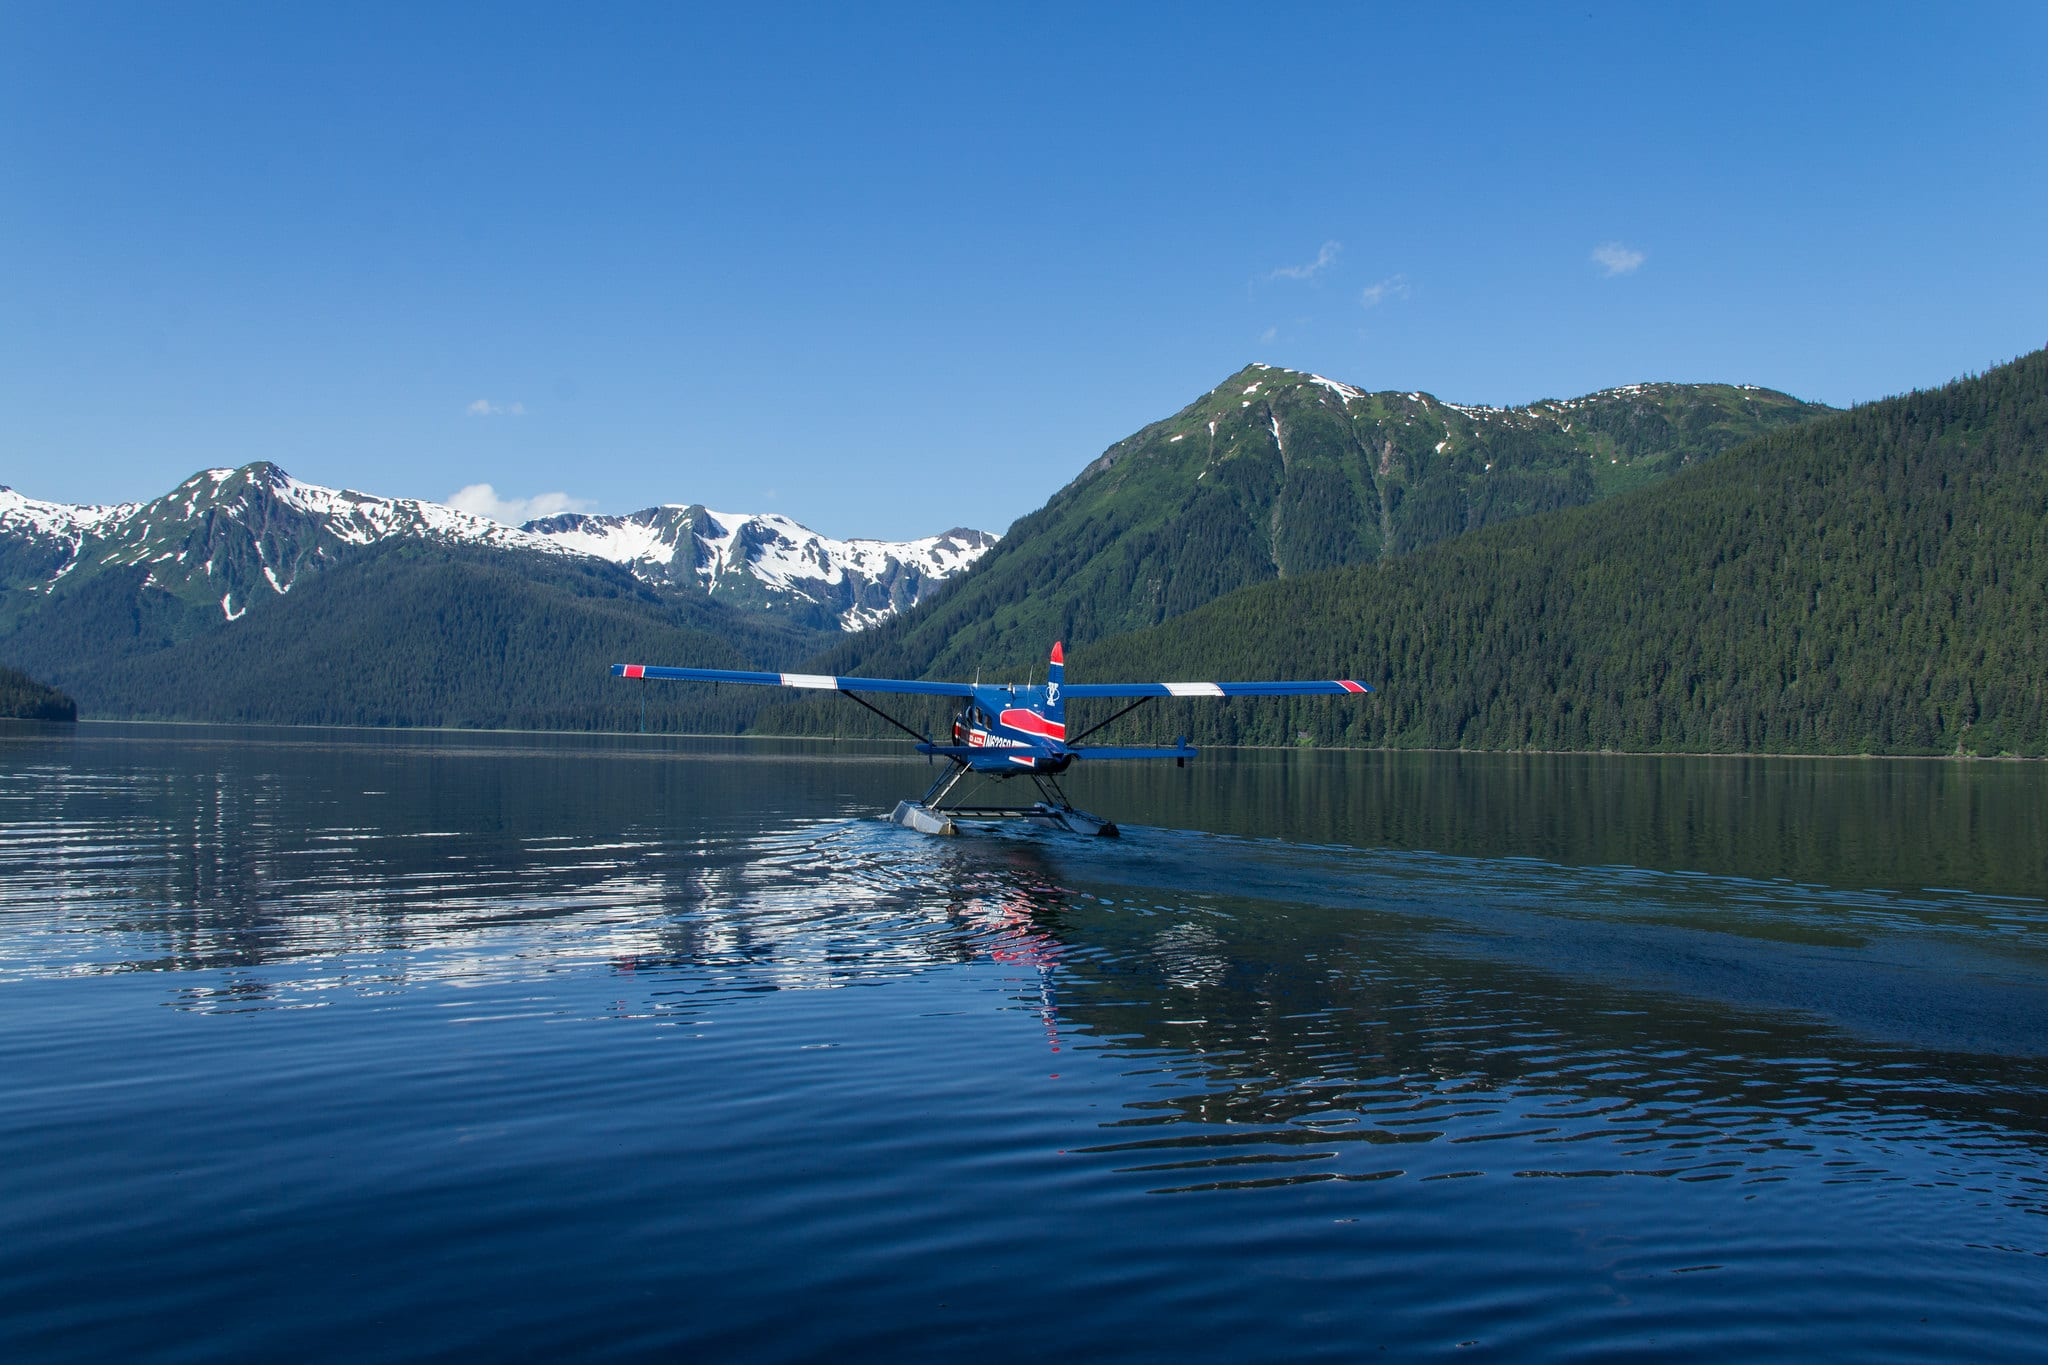 Image of a floatplane taking off on the water to shelokum hot springs in alaska